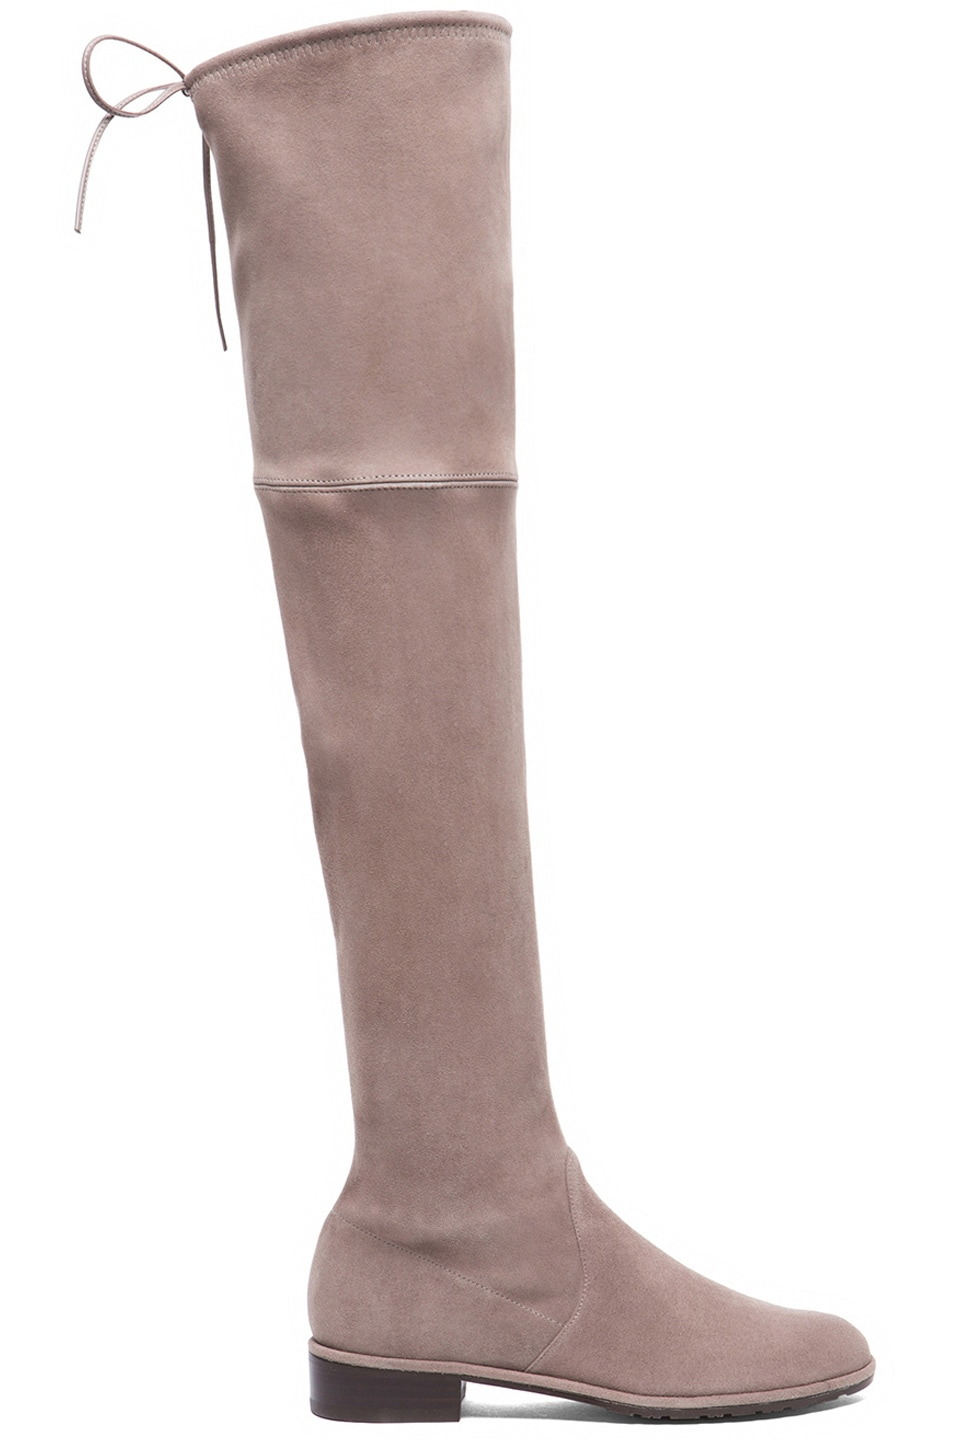 Image 1 of Stuart Weitzman Lowland Suede Boots in Taupe